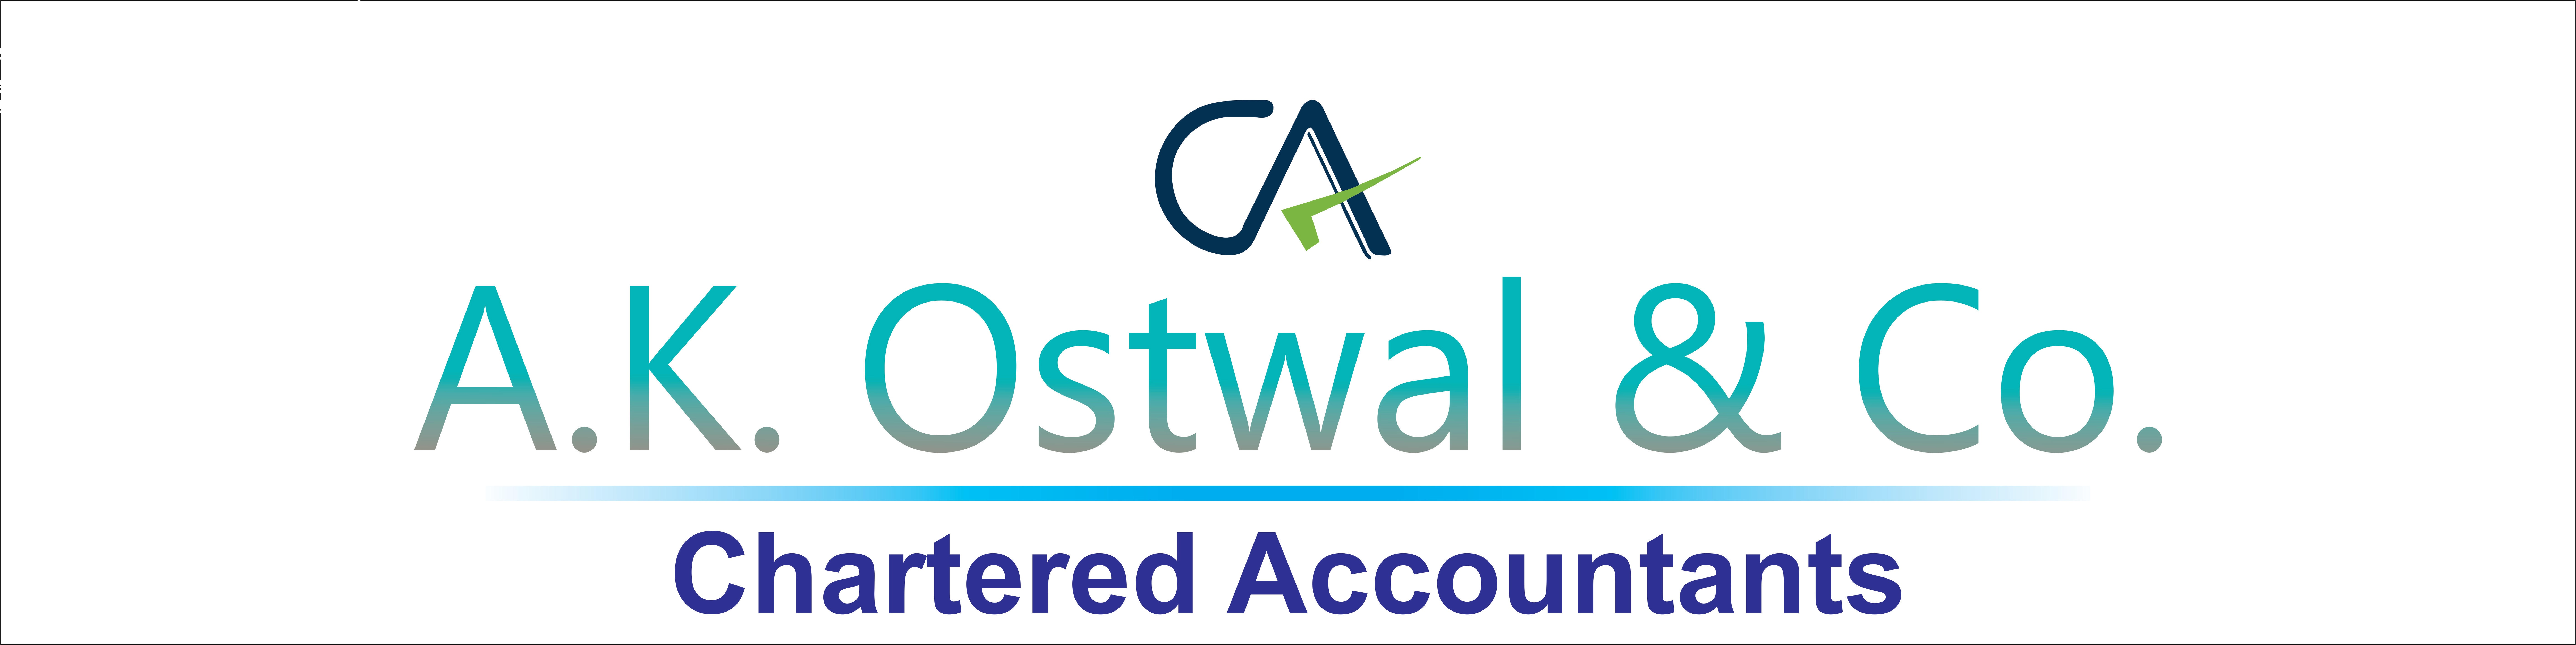 A K OSTWAL & CO